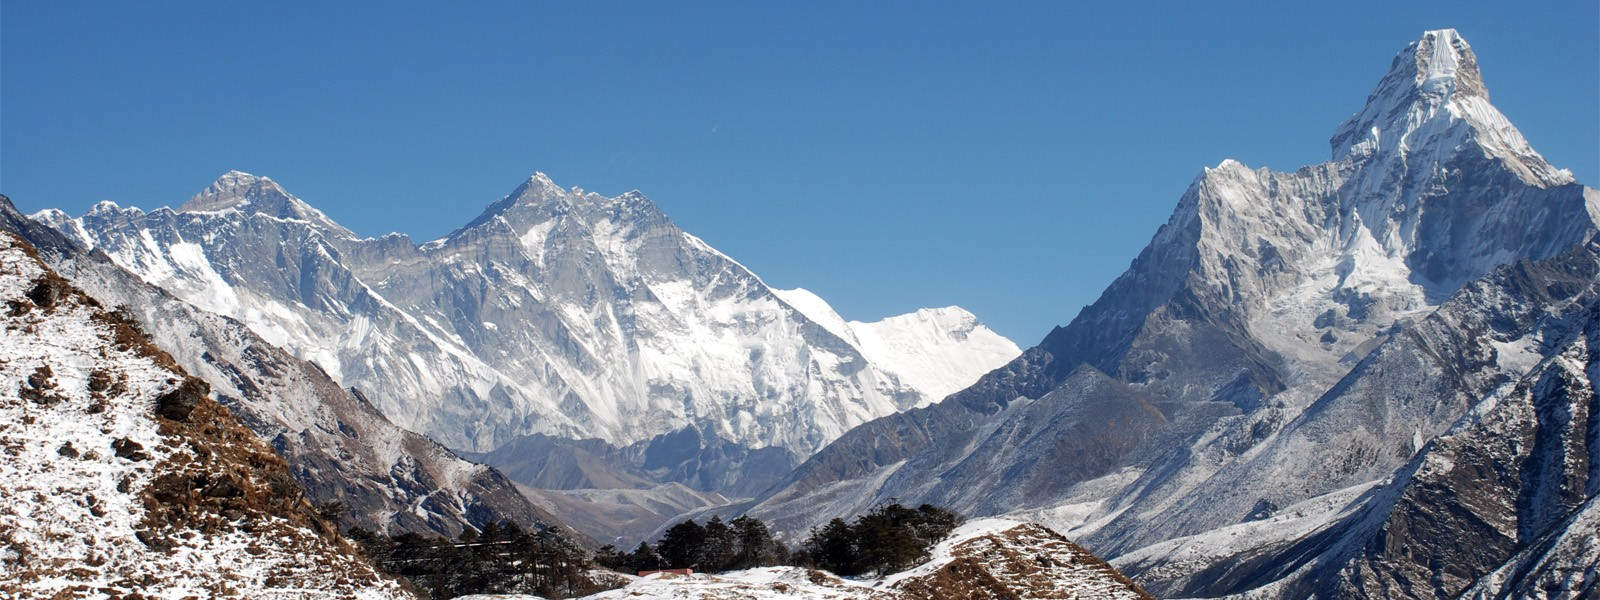 Everest Base Camp - Island Peak Climbing